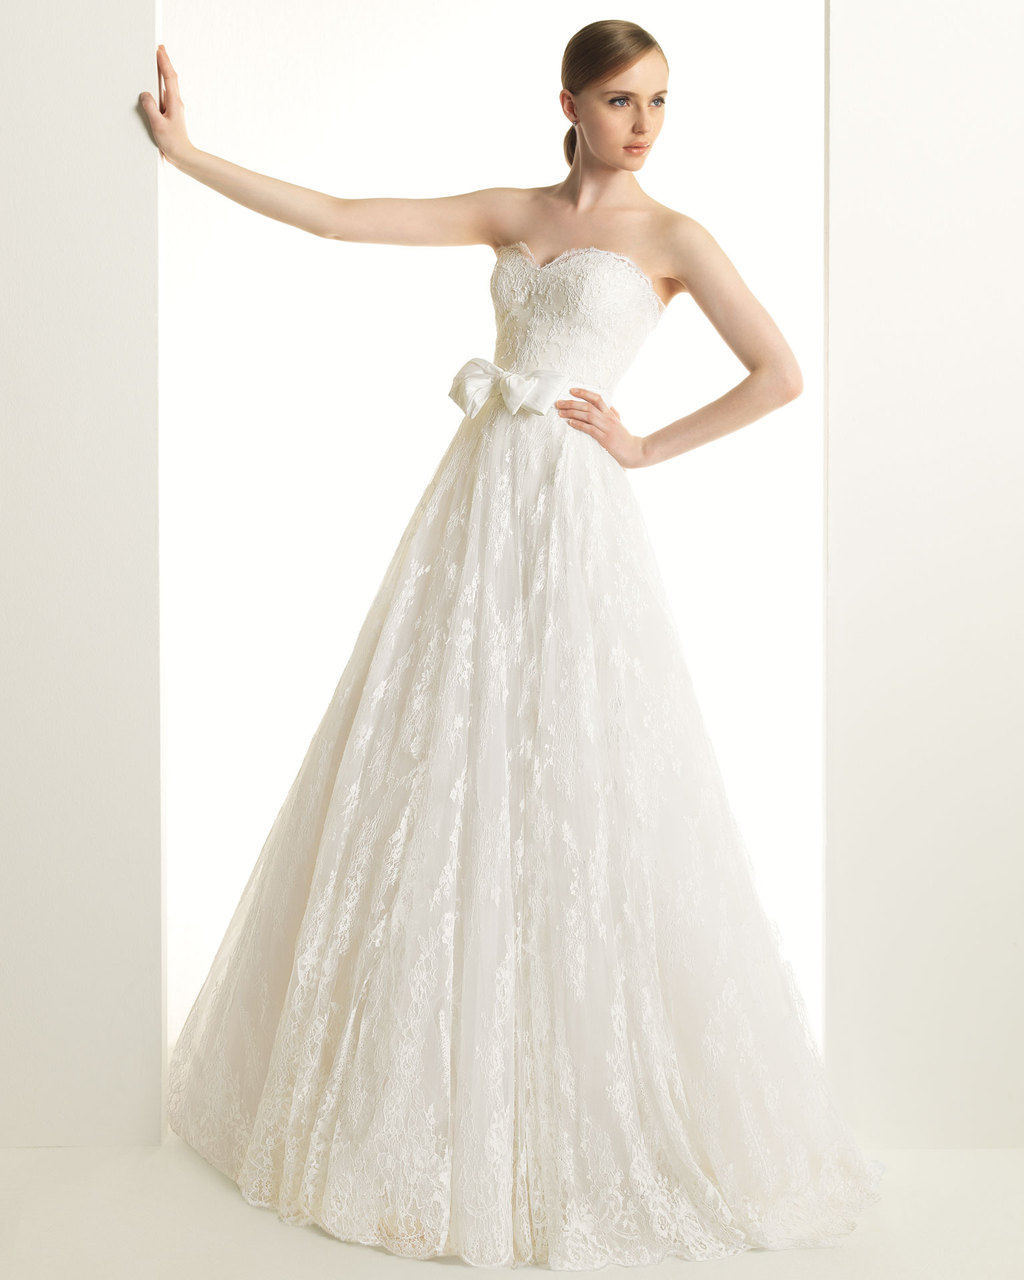 2013 wedding dress Zuhair Murad for Rosa Clara bridal gowns 208